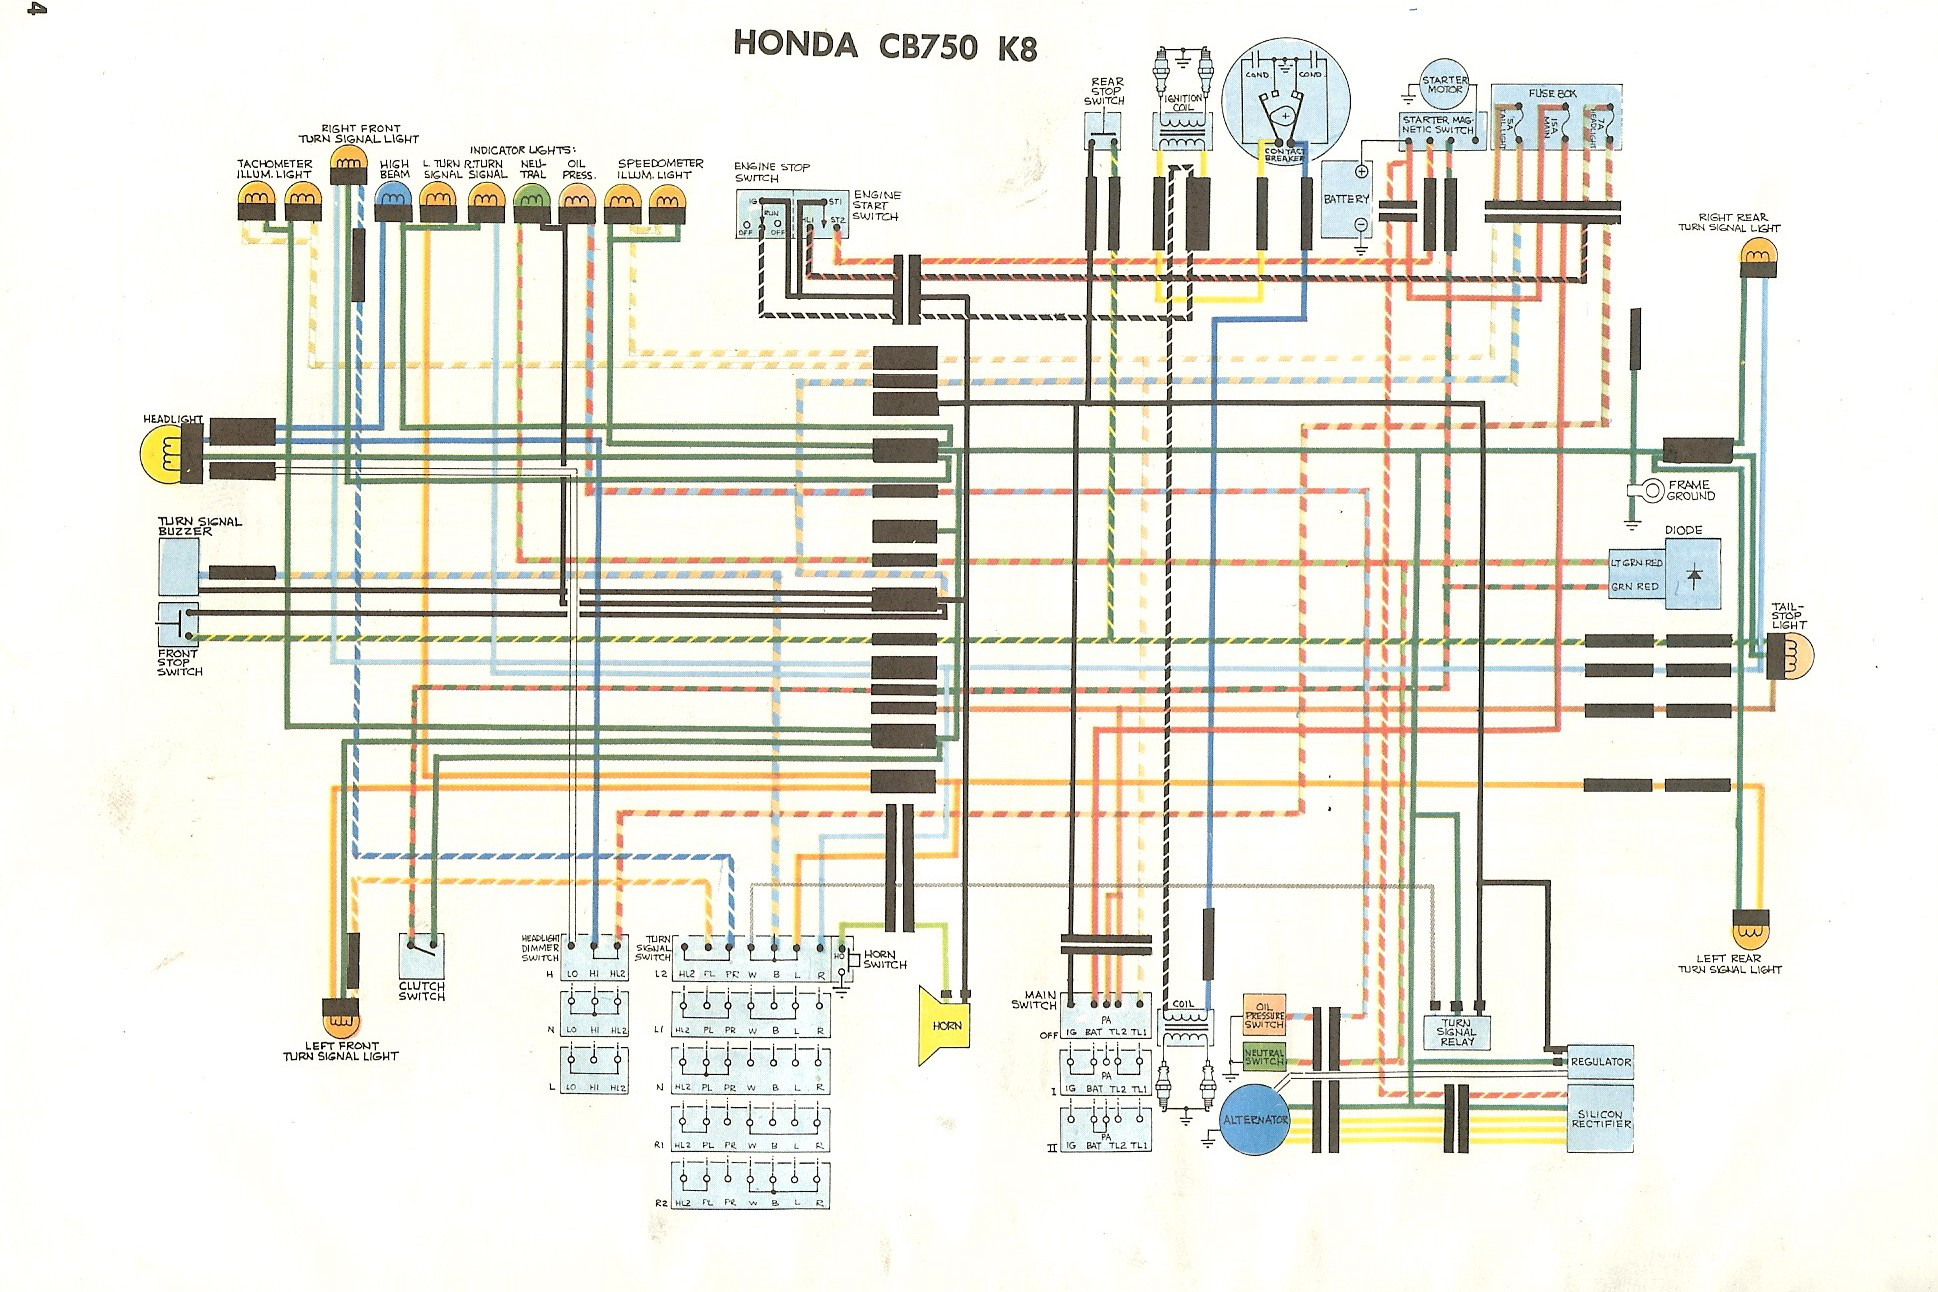 1980 honda cb750 wiring diagram wiring library rh evevo co 1980 honda cb750c wiring diagram Fuse Box Wiring Diagram